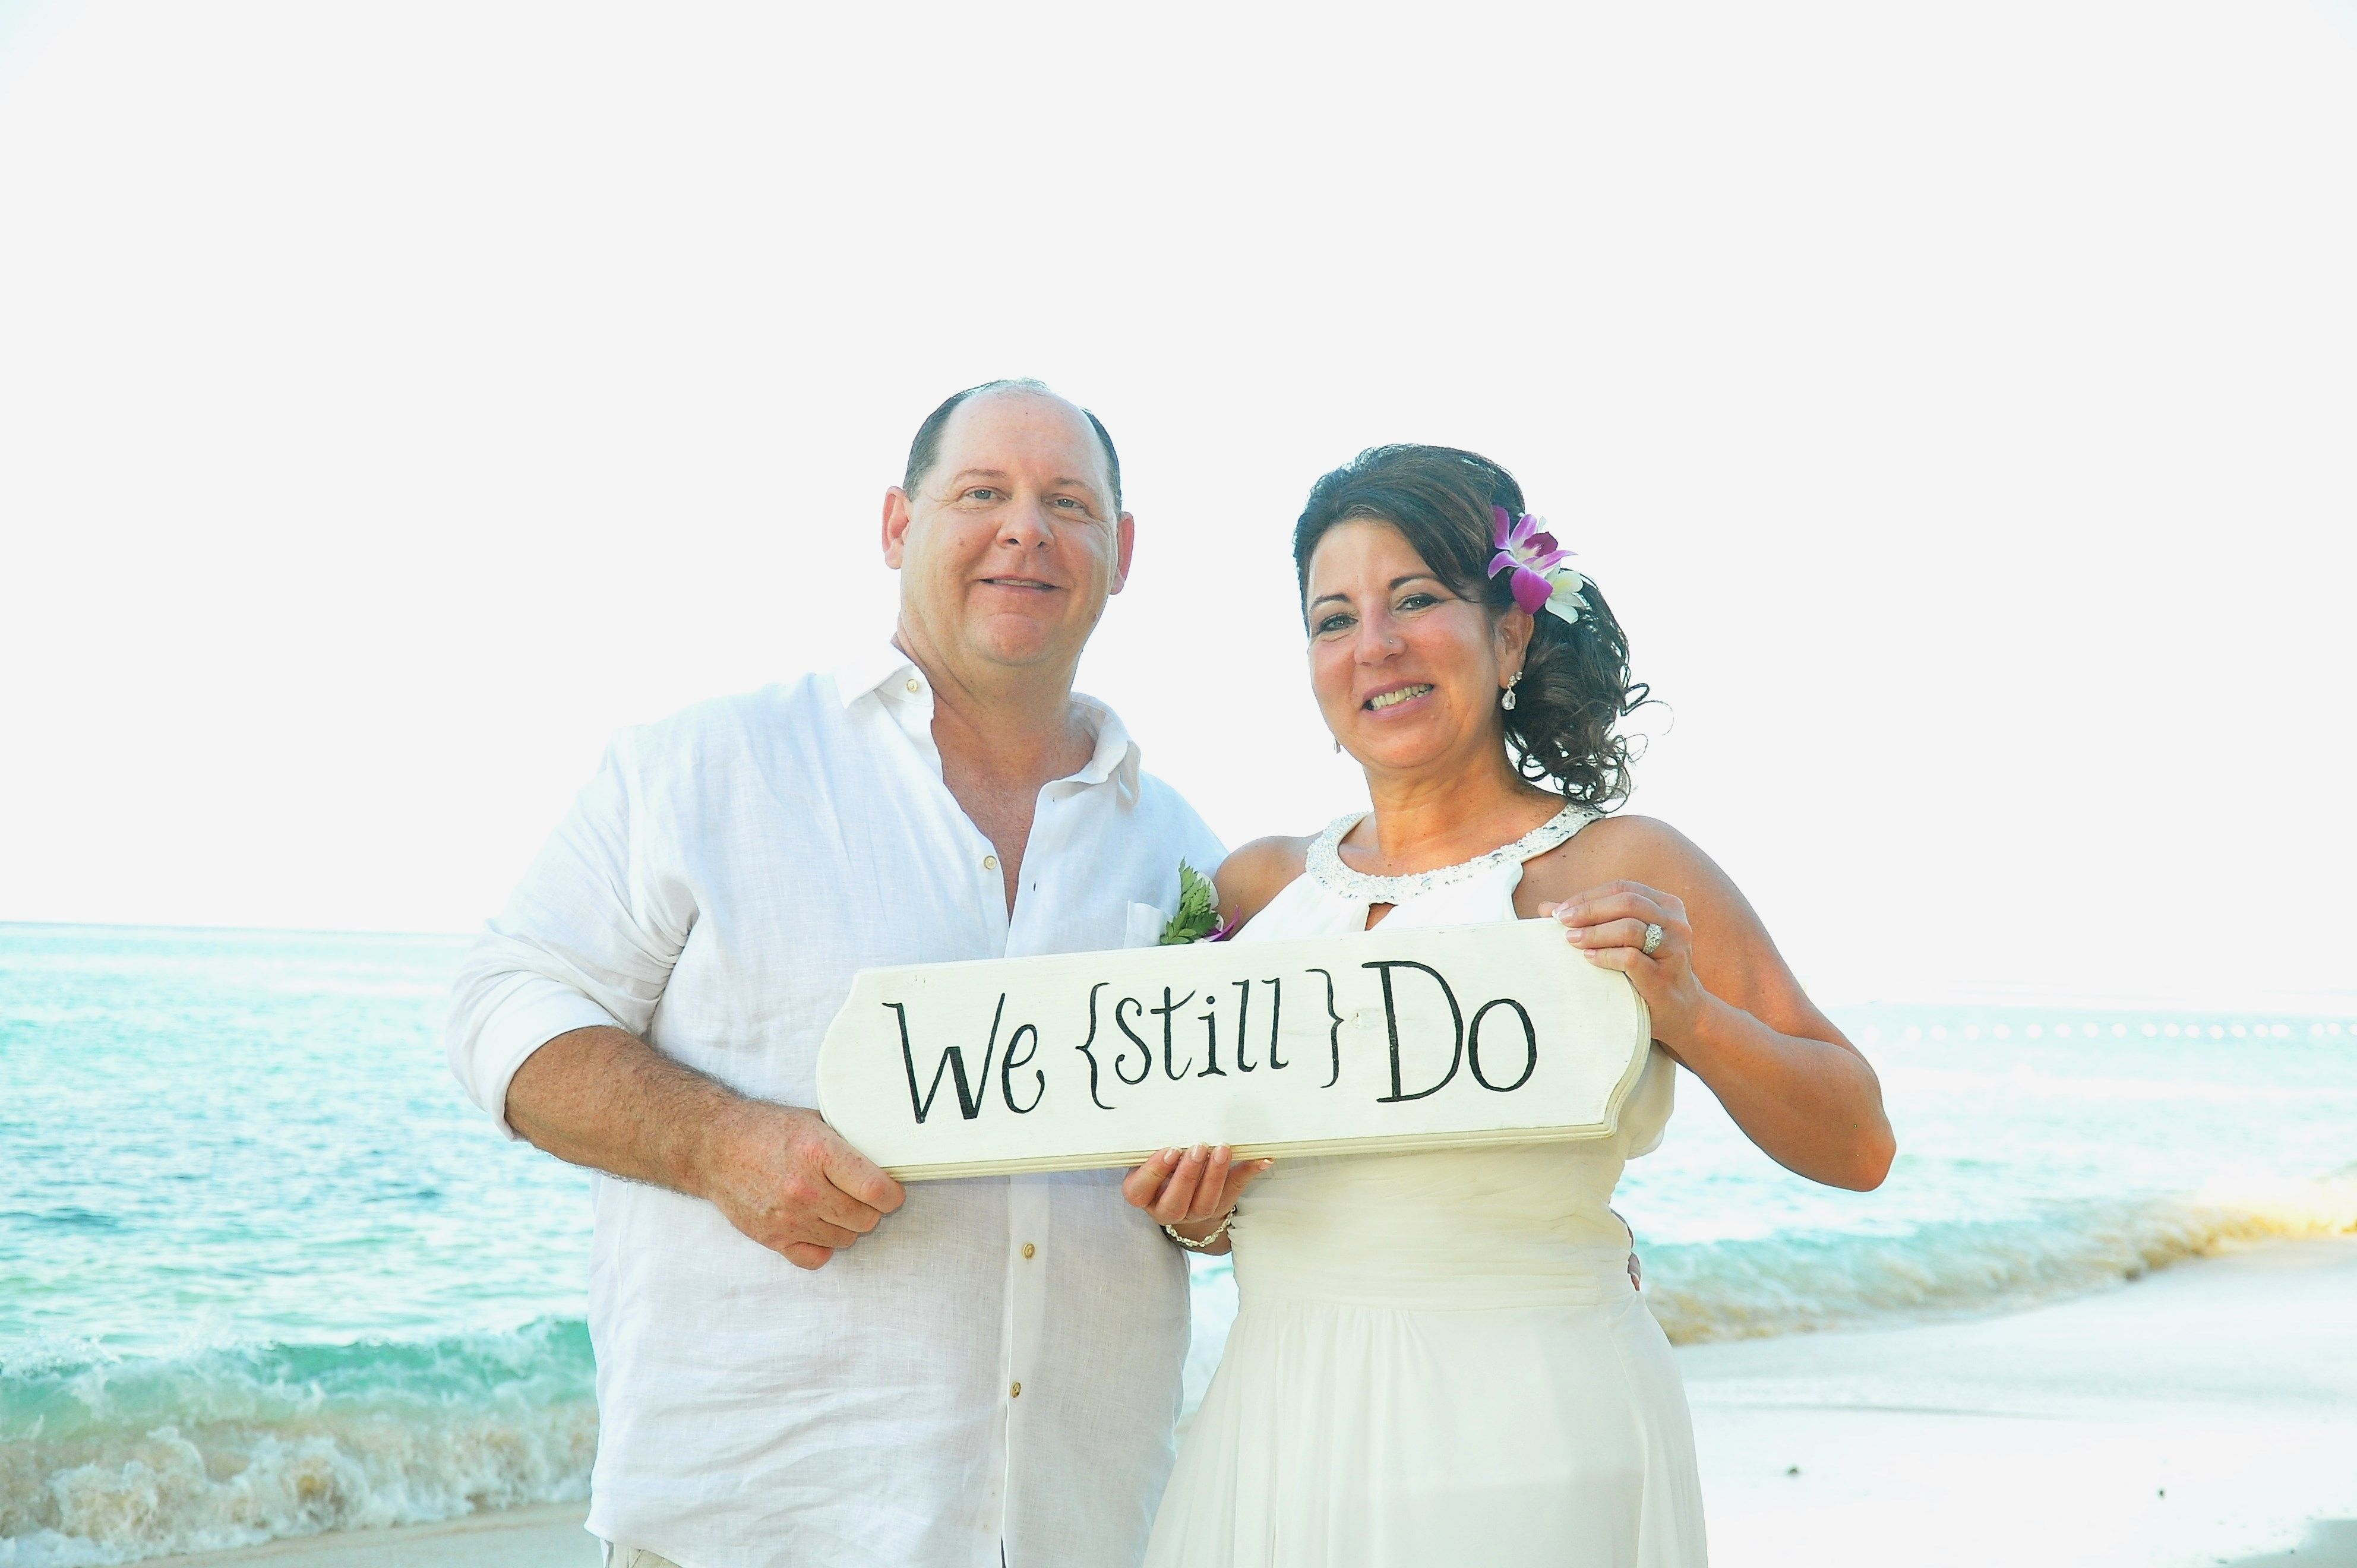 I Will Do This One Day 25th Anniversary Vow Renewal Beach Wedding Wedding Renewal Vows Renewal Wedding Vow Renewal Beach